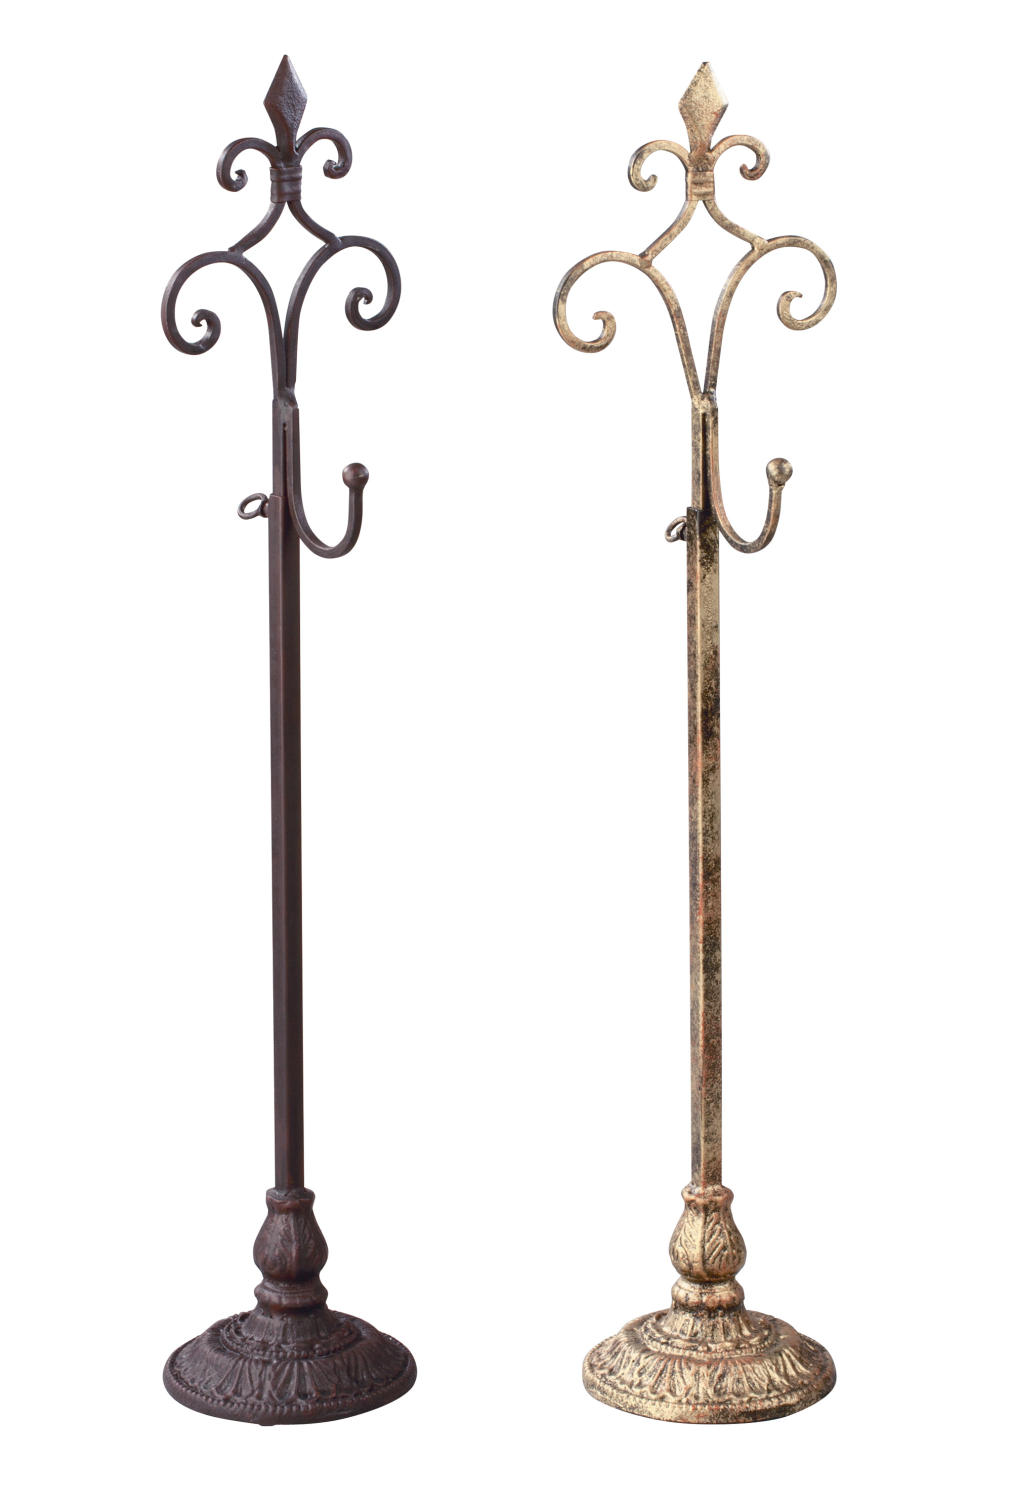 Adjustable Wreath & Purse Stands (Wreath & Finial Stands)